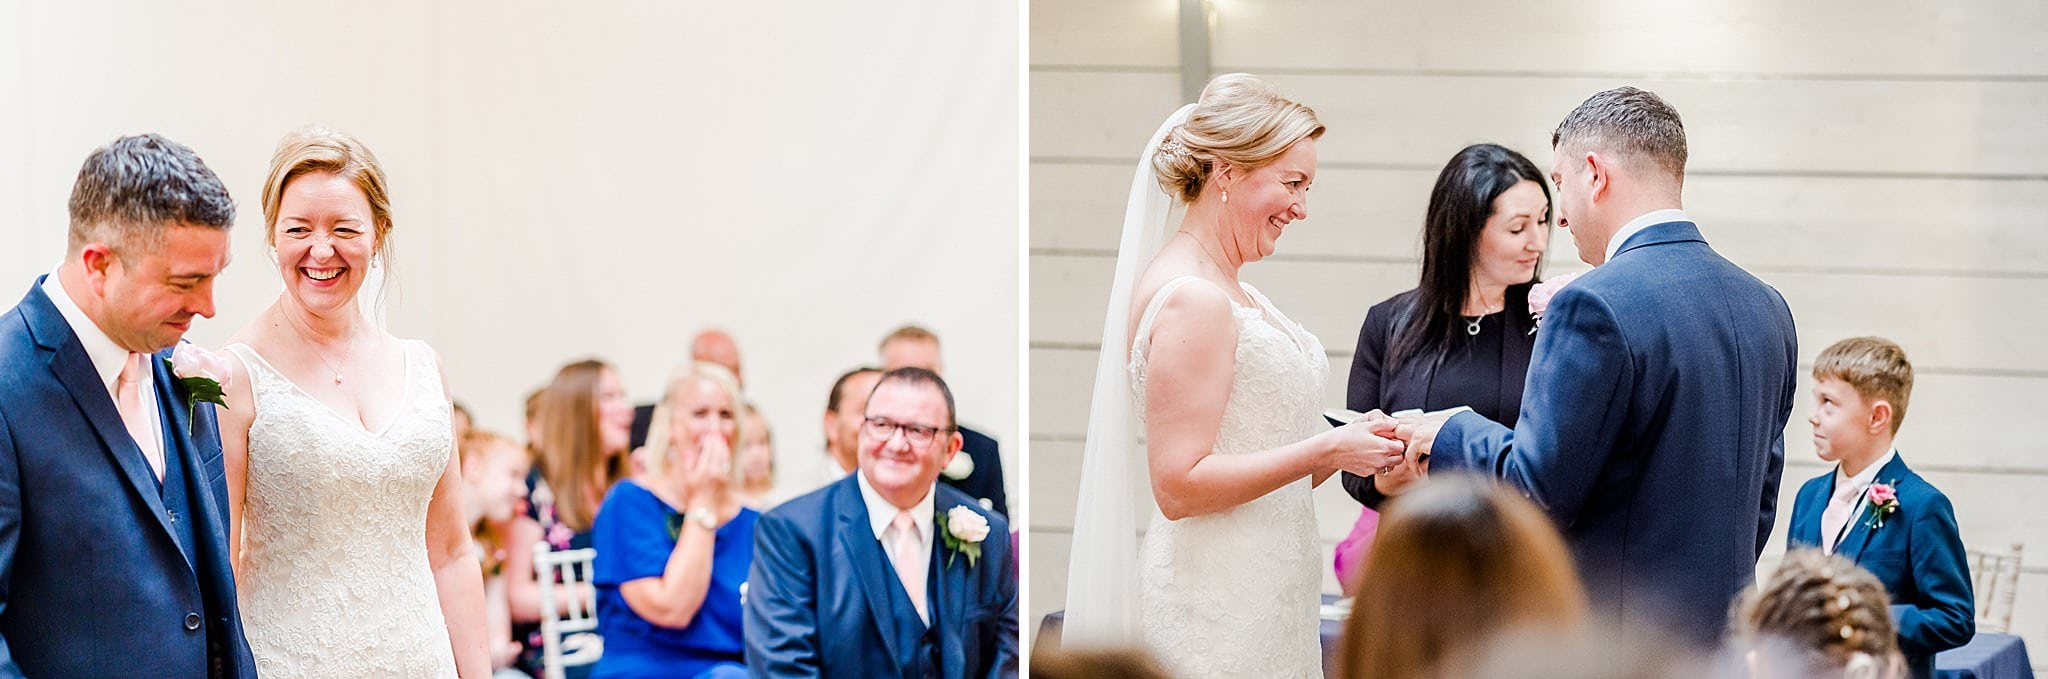 Bride and groom exchange ring during their wedding ceremony at Newton House Barns